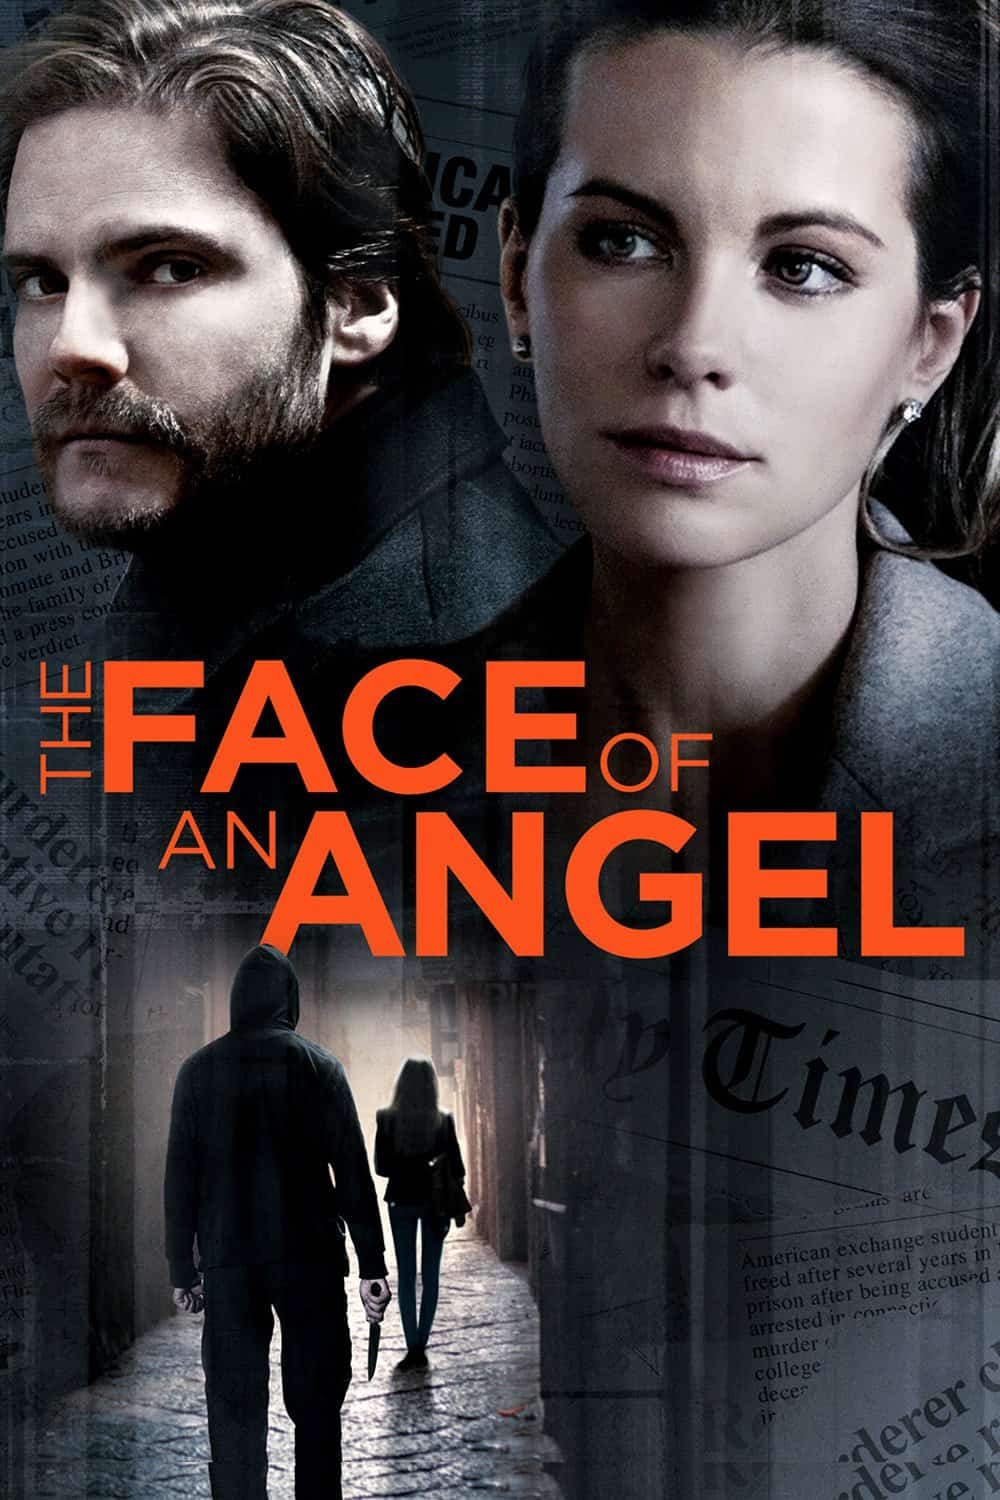 The Face of an Angel, 2014